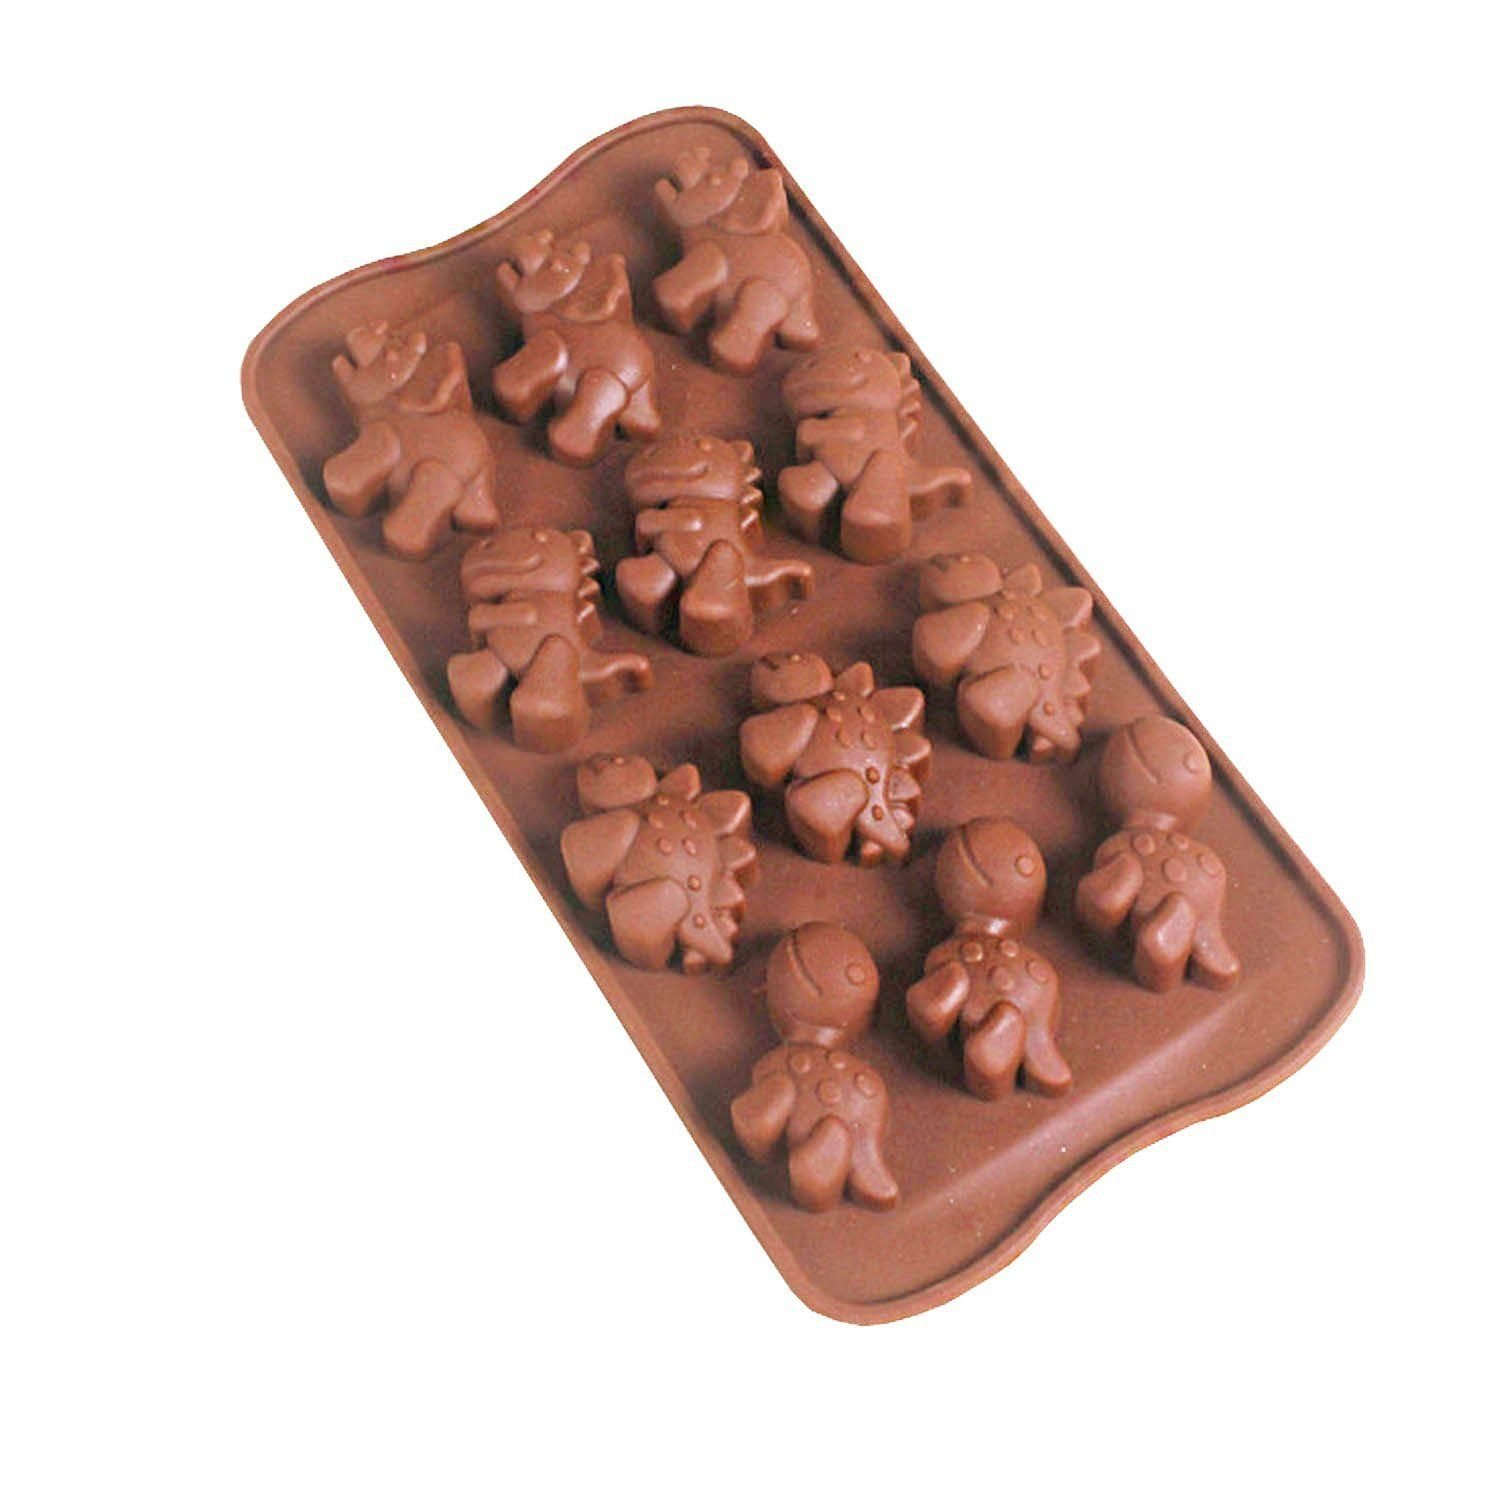 Chocolate Molds Toys Smiley Animal Zoo Face Dinosaur Silicone Candy Chocolate Soap Molds Baking